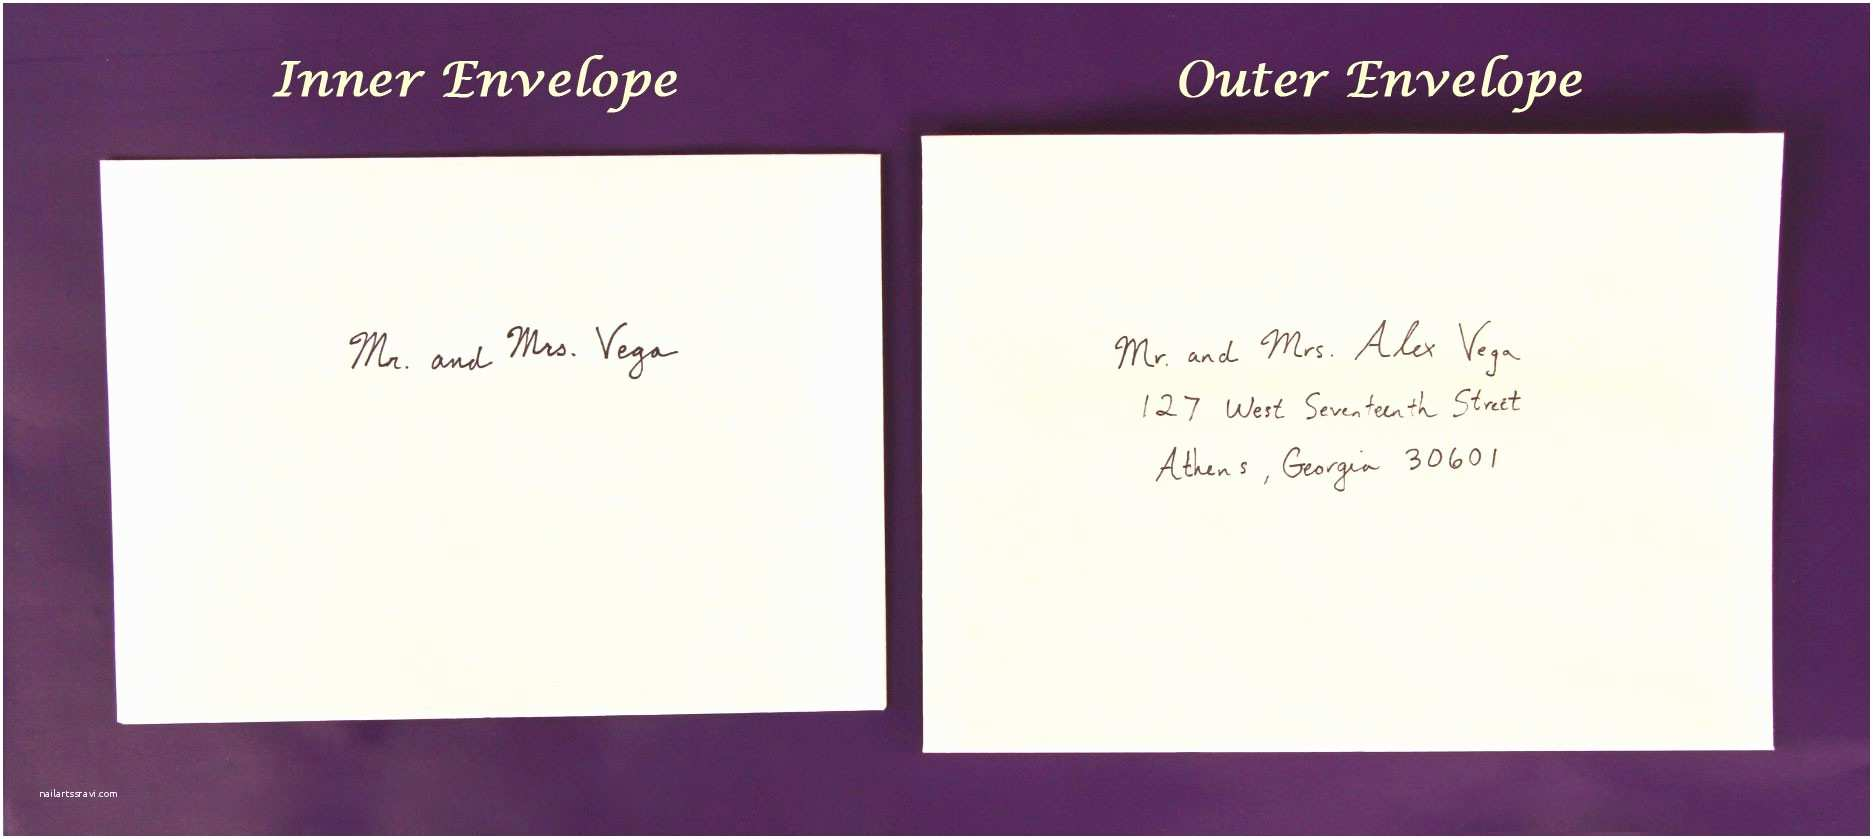 Inner and Outer Envelope Sizes for Wedding Invitations How to Address Wedding Invitations